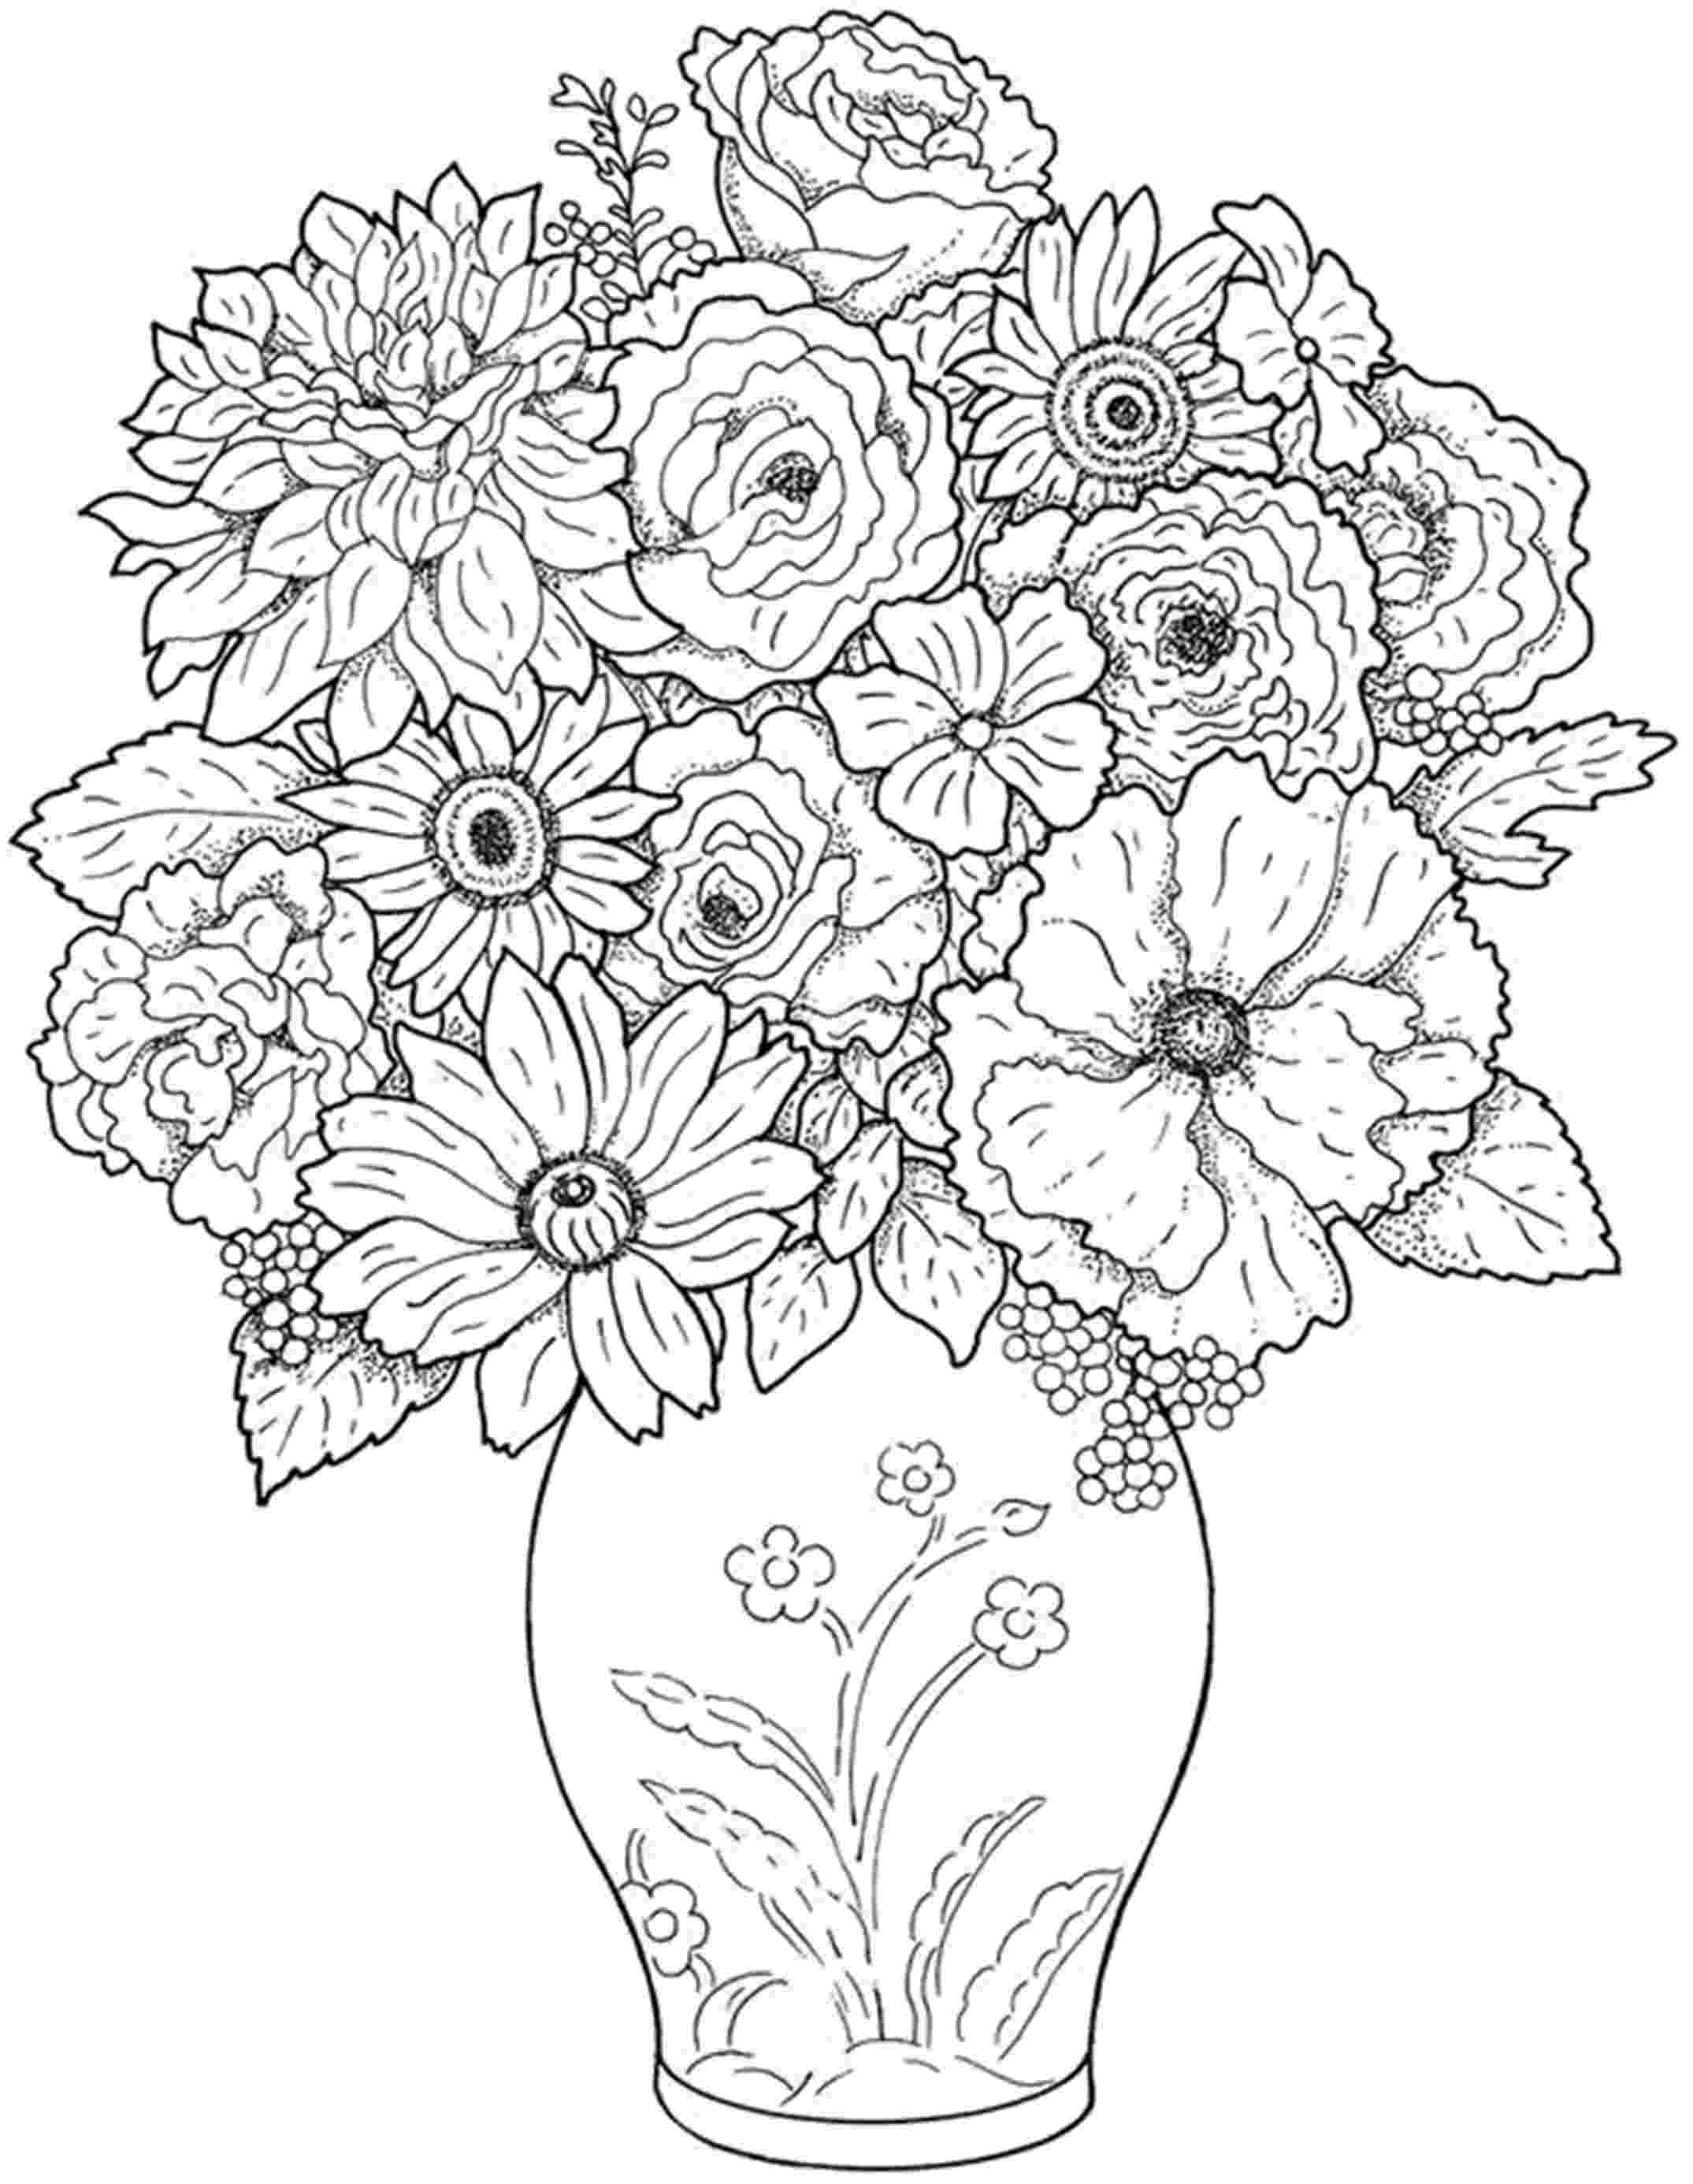 free coloring pictures of flowers free printable flower coloring pages for kids best of coloring flowers pictures free 1 1